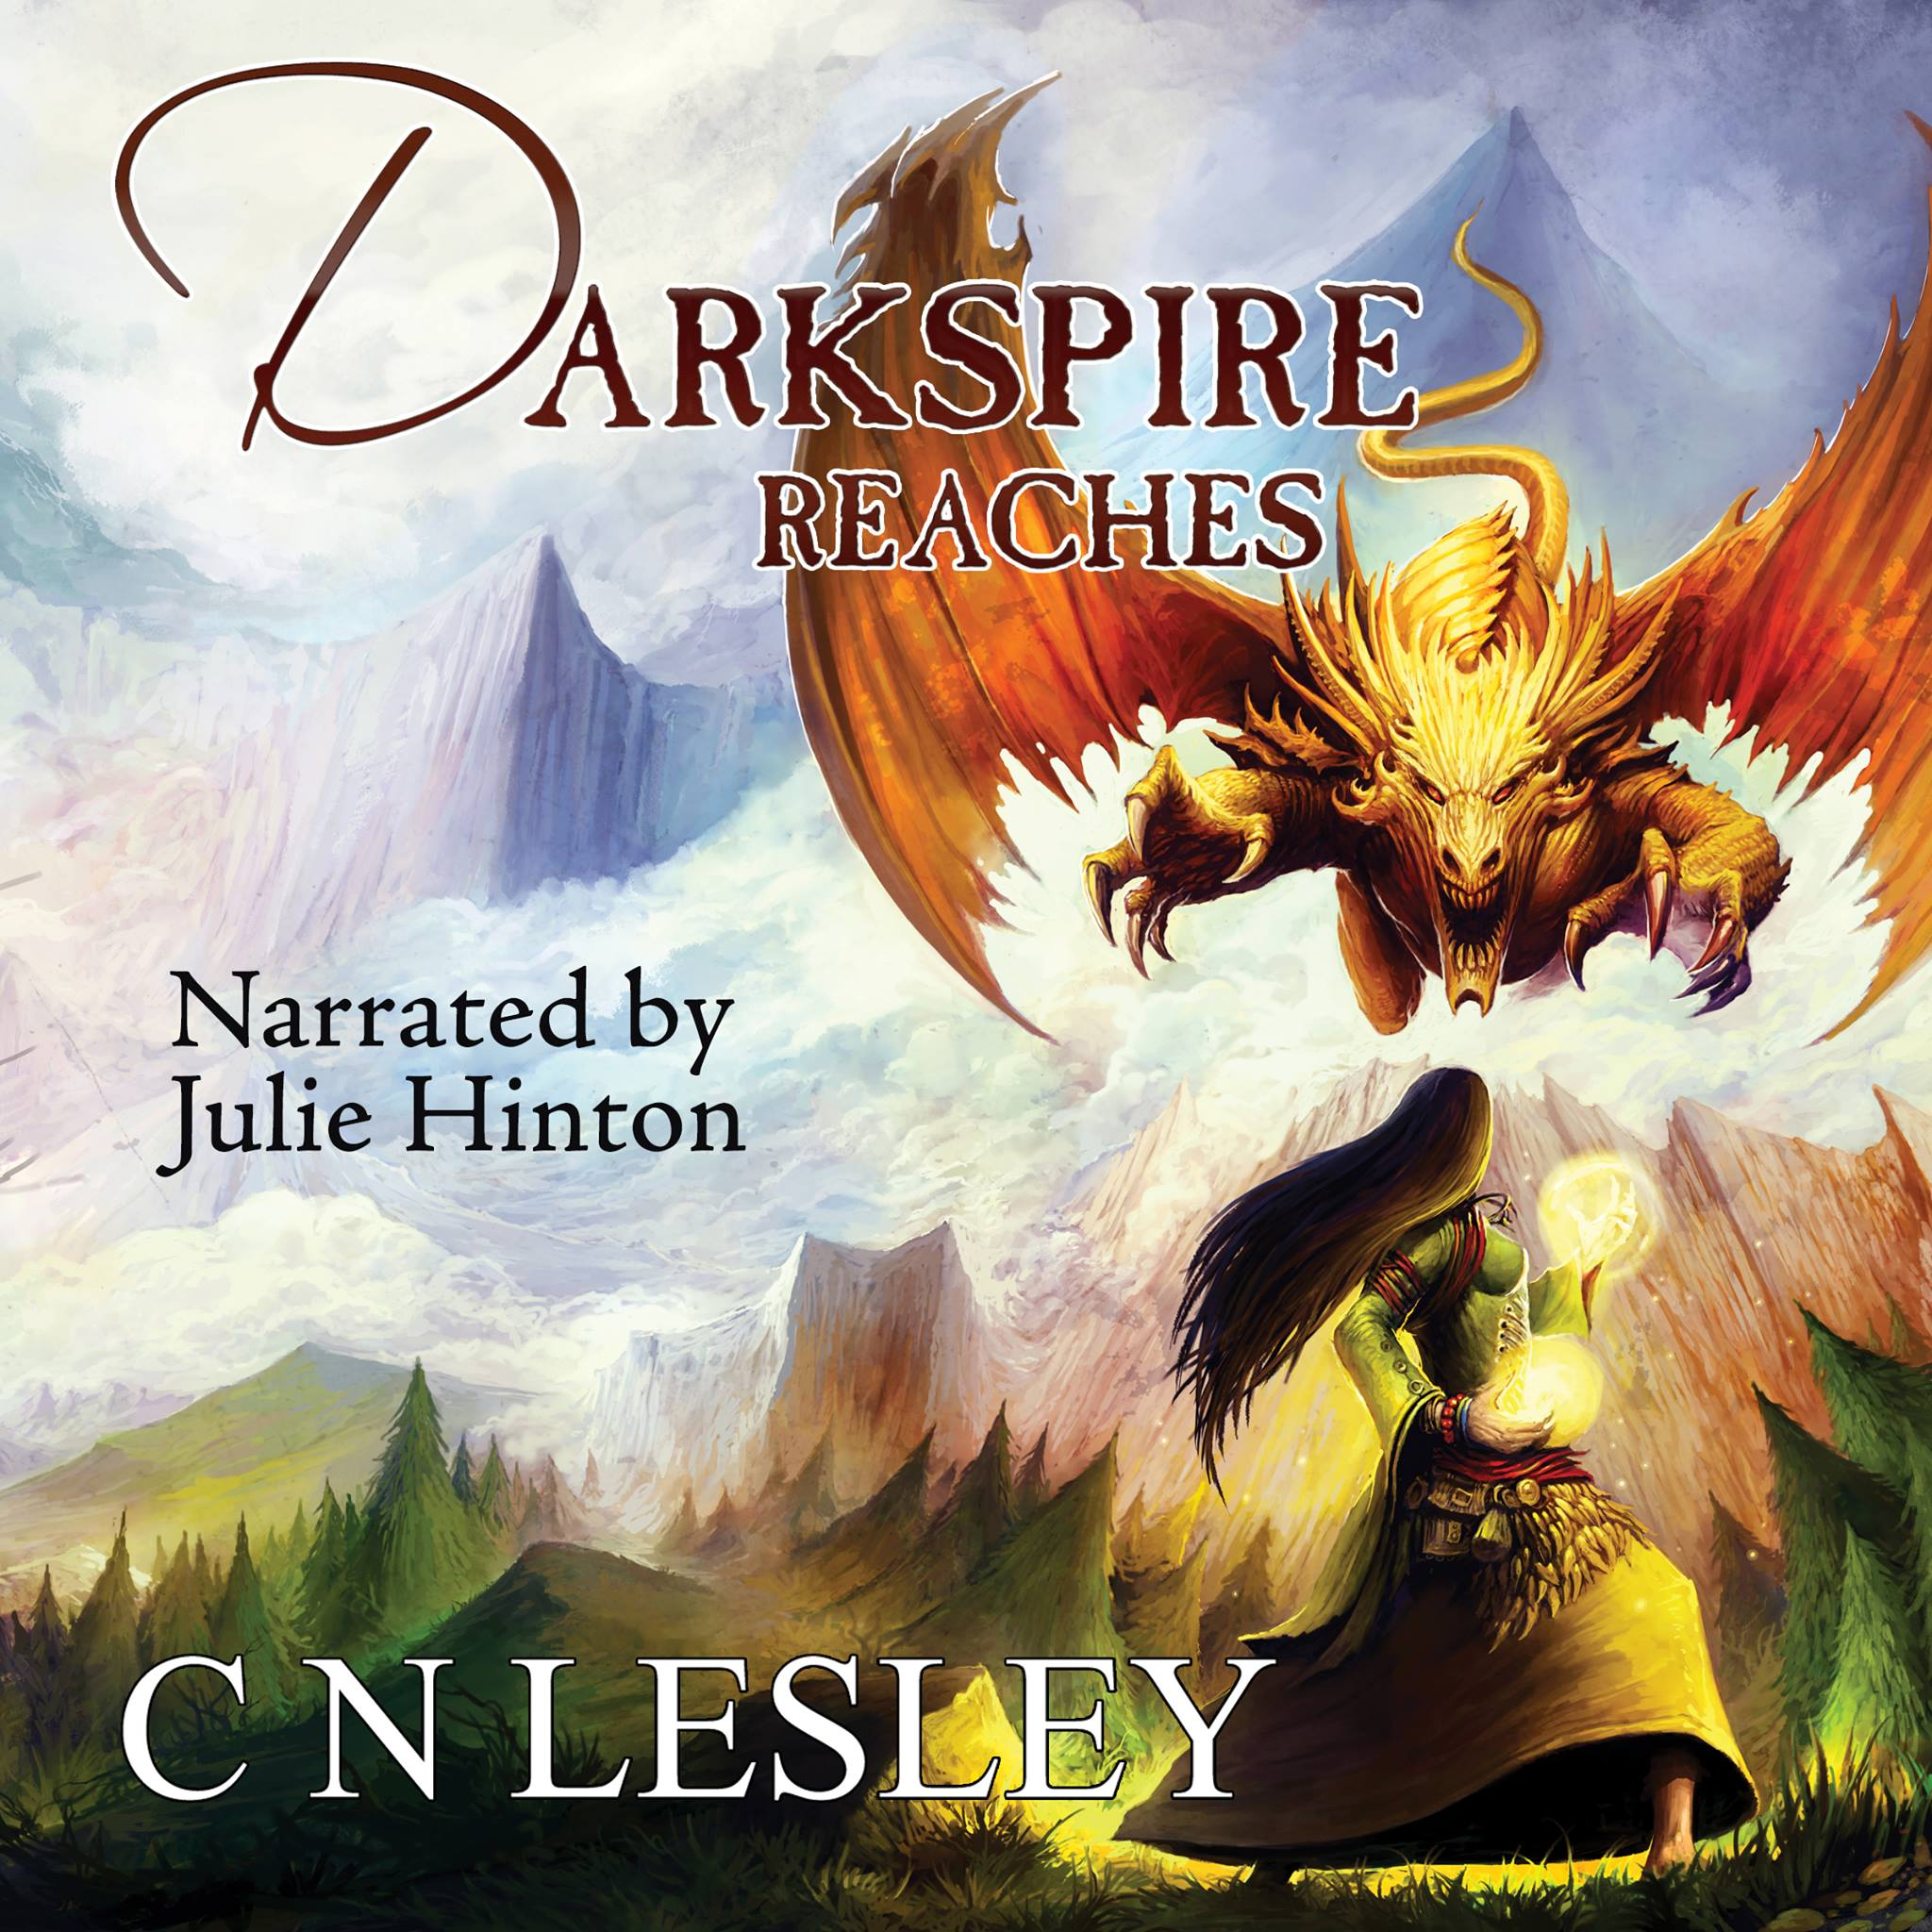 Audio darkspire reaches